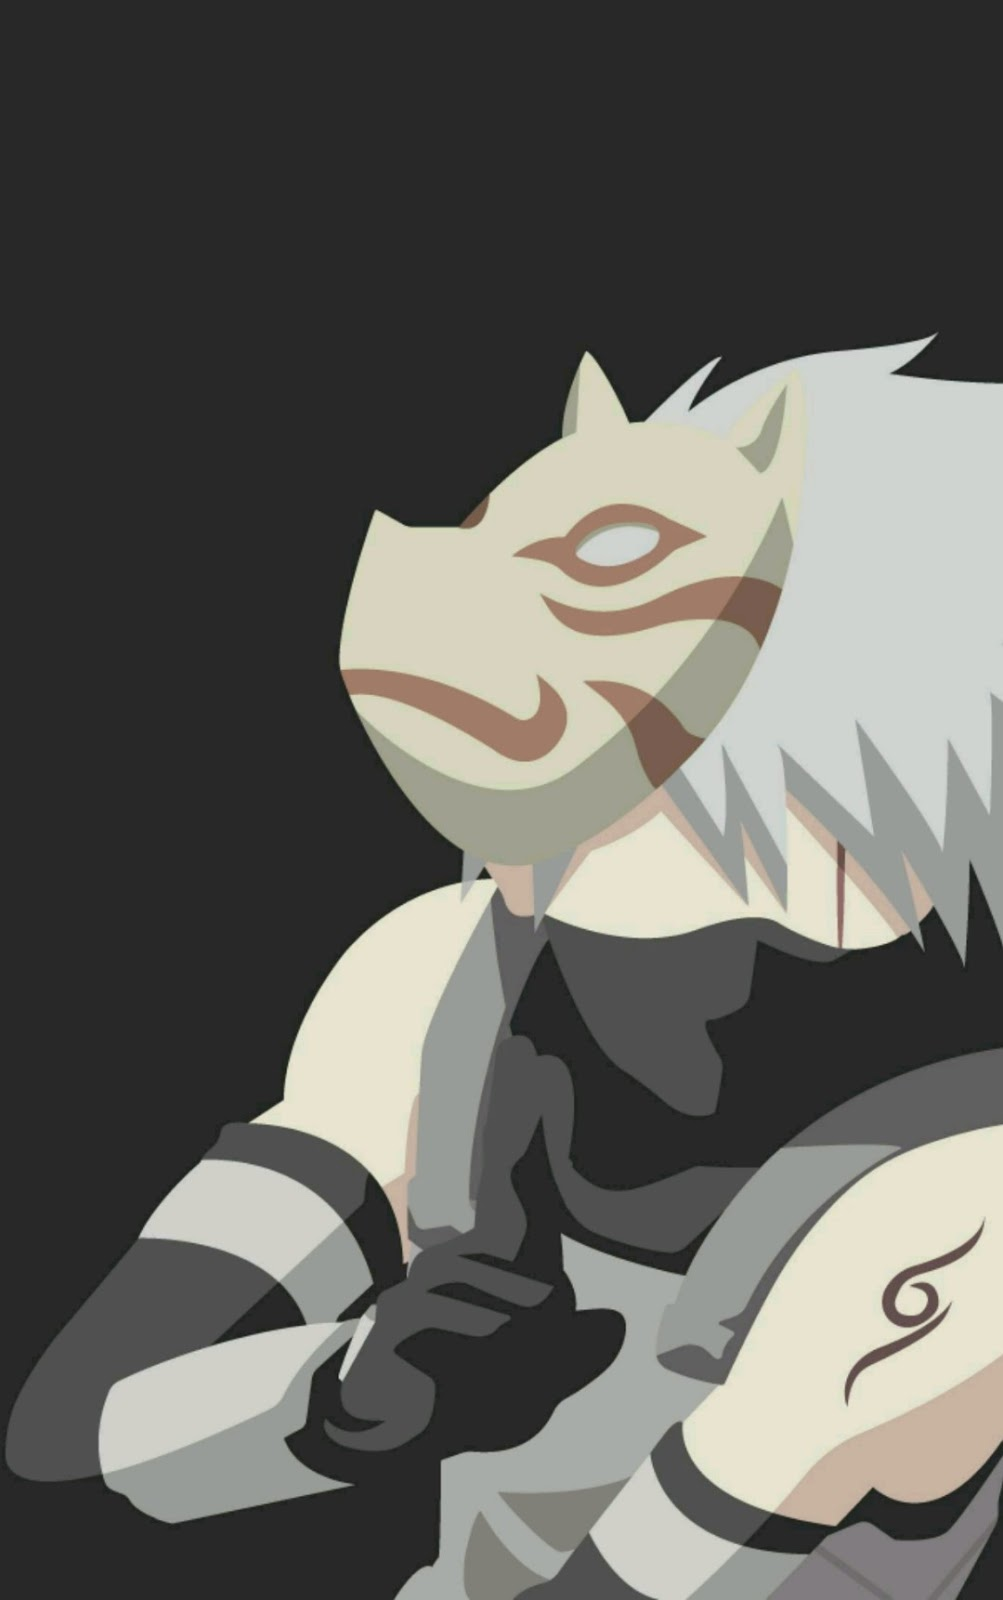 6 Download Wallpaper hatake kakashi vector untuk Android dan Whatsapp